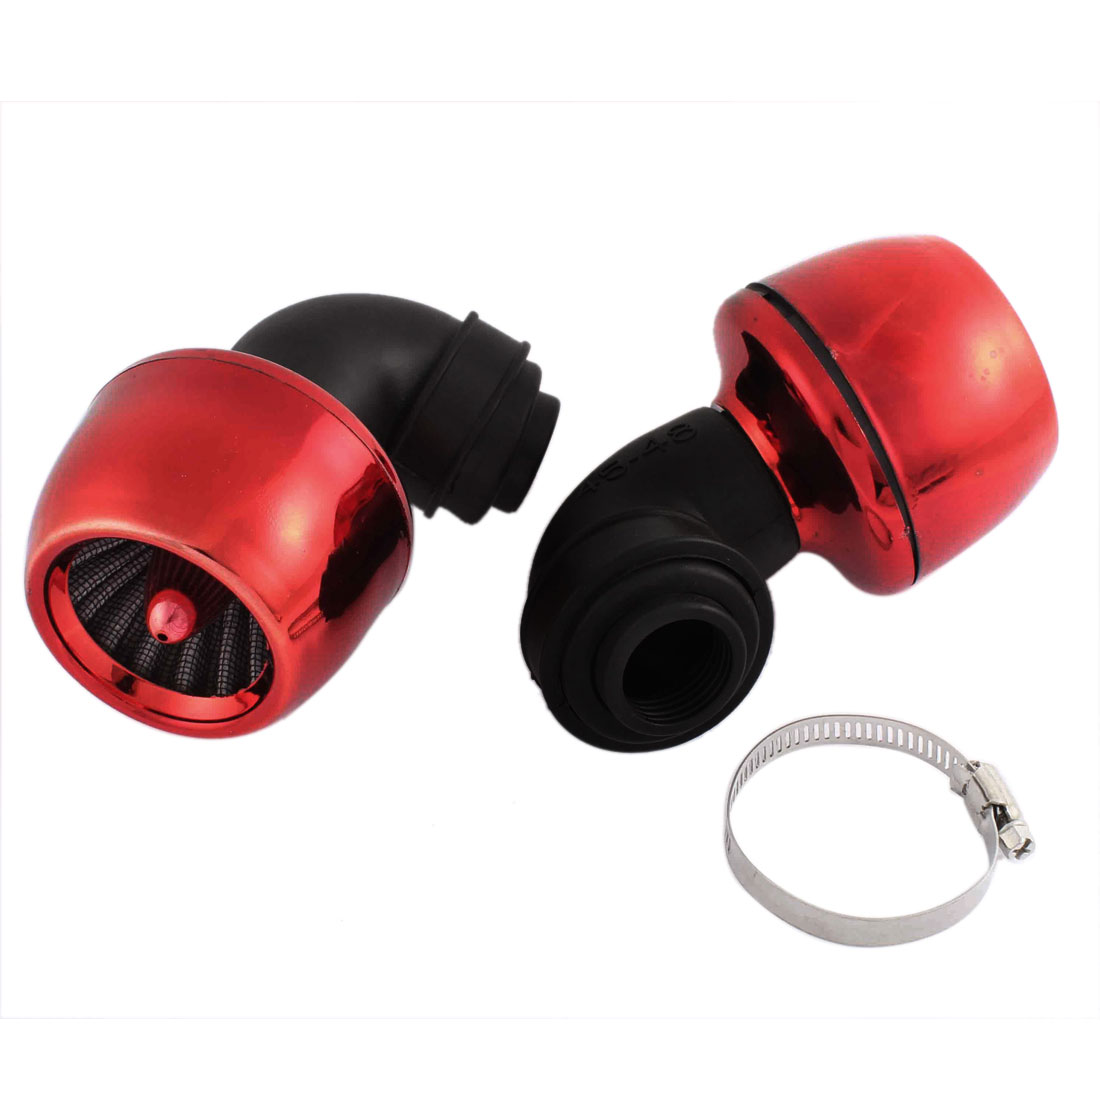 "2 Pcs Thread Diameter 51mm 2"" Red Apple Shape Air Filter Cleaner for Car"